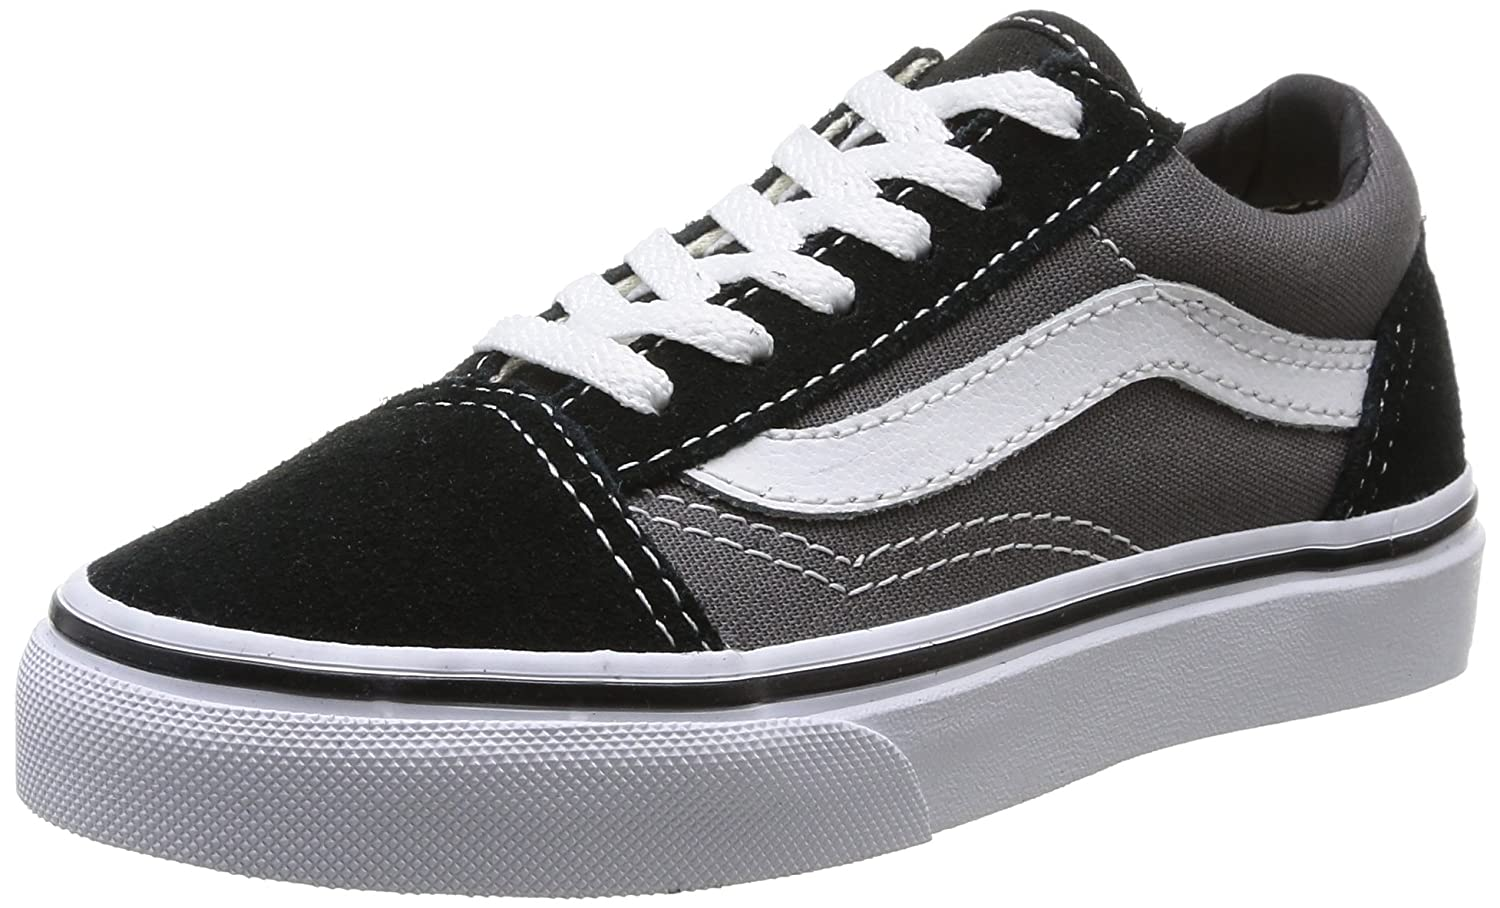 VANS Unisex Kids (C&L) Old Skool Skate Shoes, Comfortable and Durable in Sturdy Canvas and Leather Uppers B00PMMR93W 10.5 M US Little Kid|Black Pewter